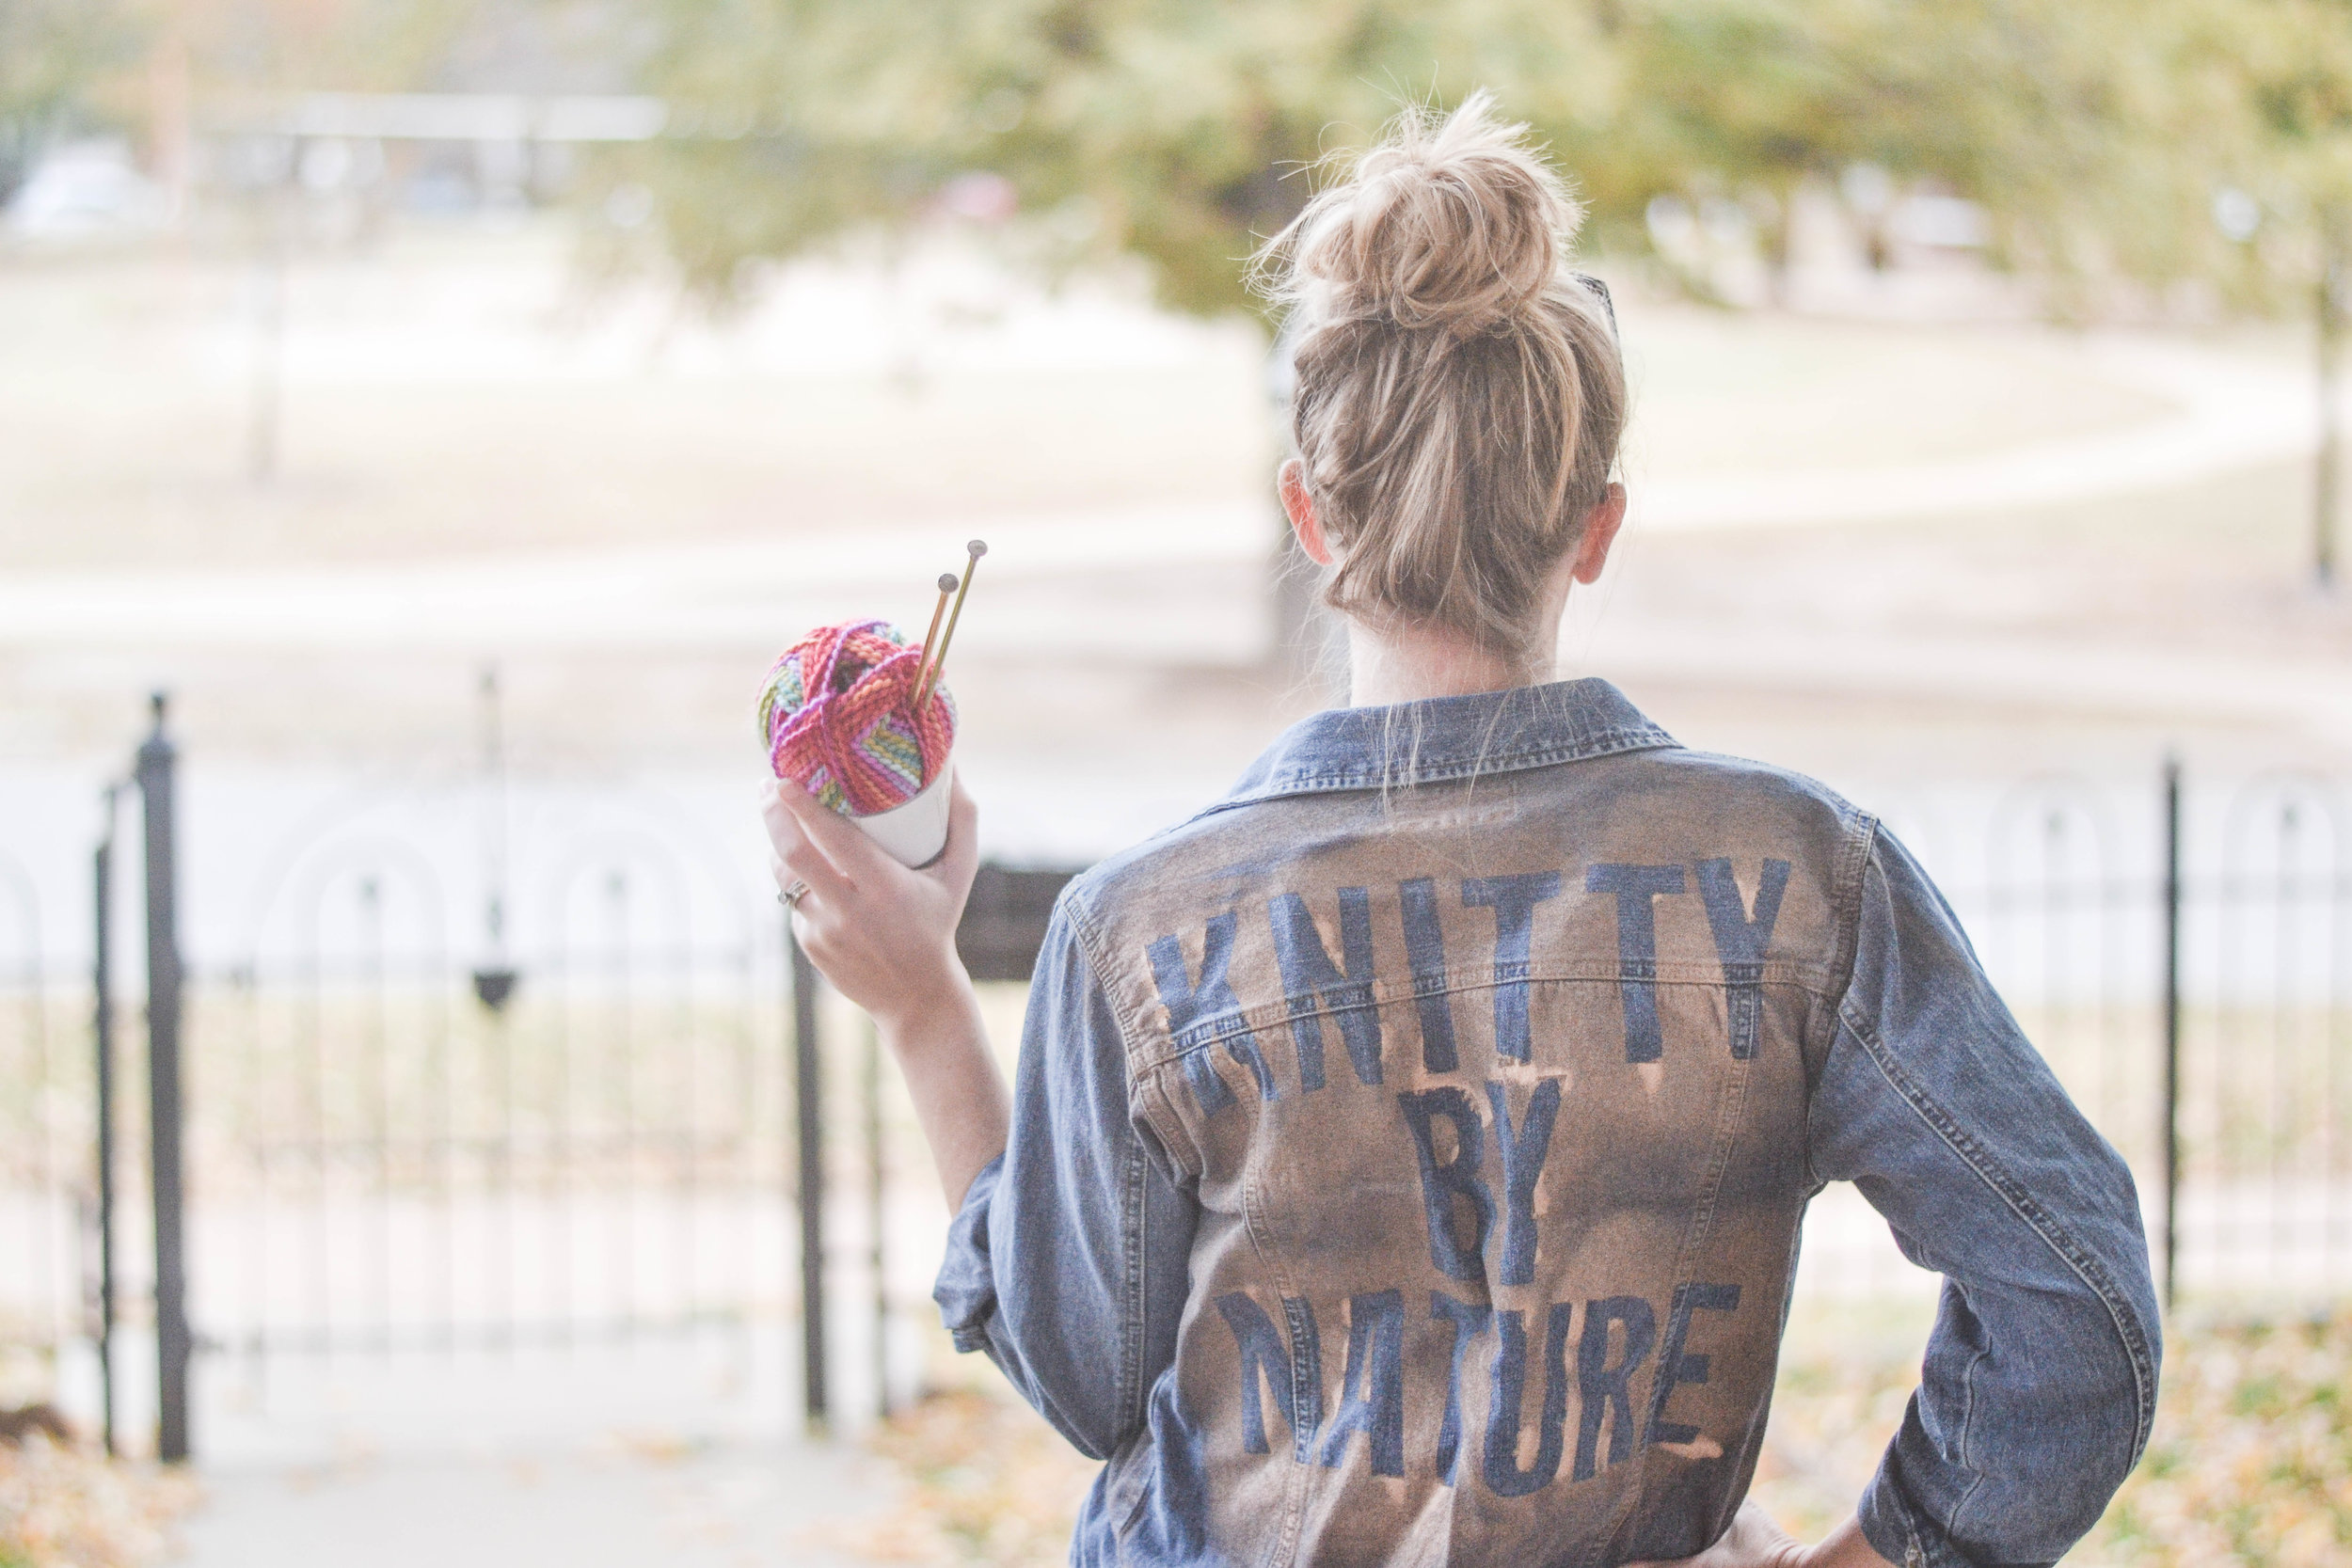 DIY Knitty by nature mantra painted mantra jacket